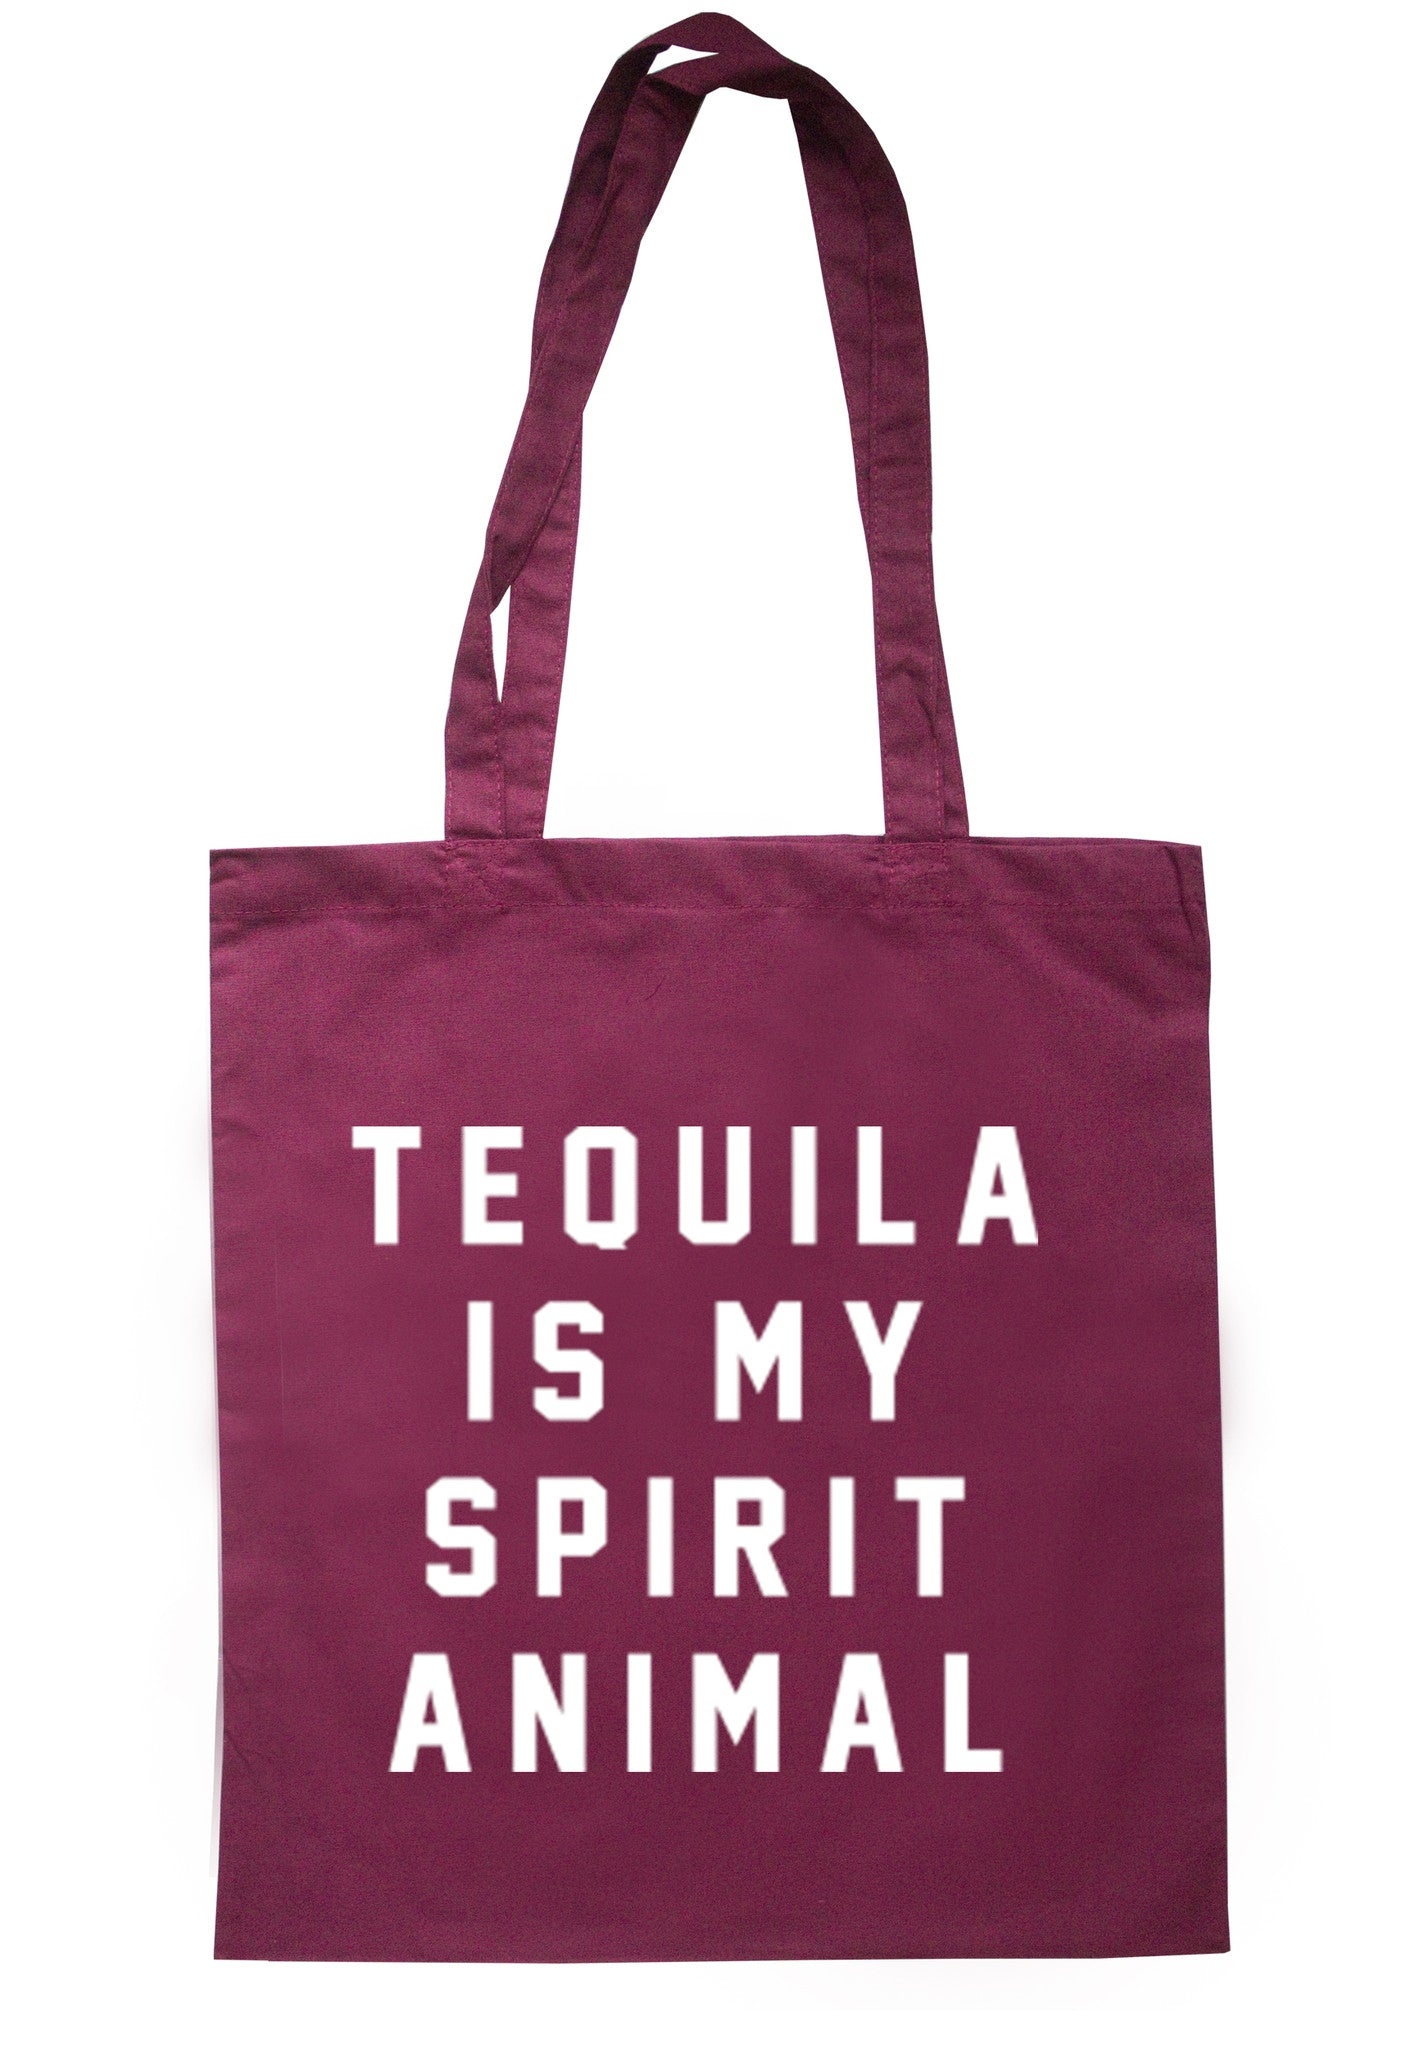 Tequila Is My Spirit Animal Tote Bag TB0054 - Illustrated Identity Ltd.